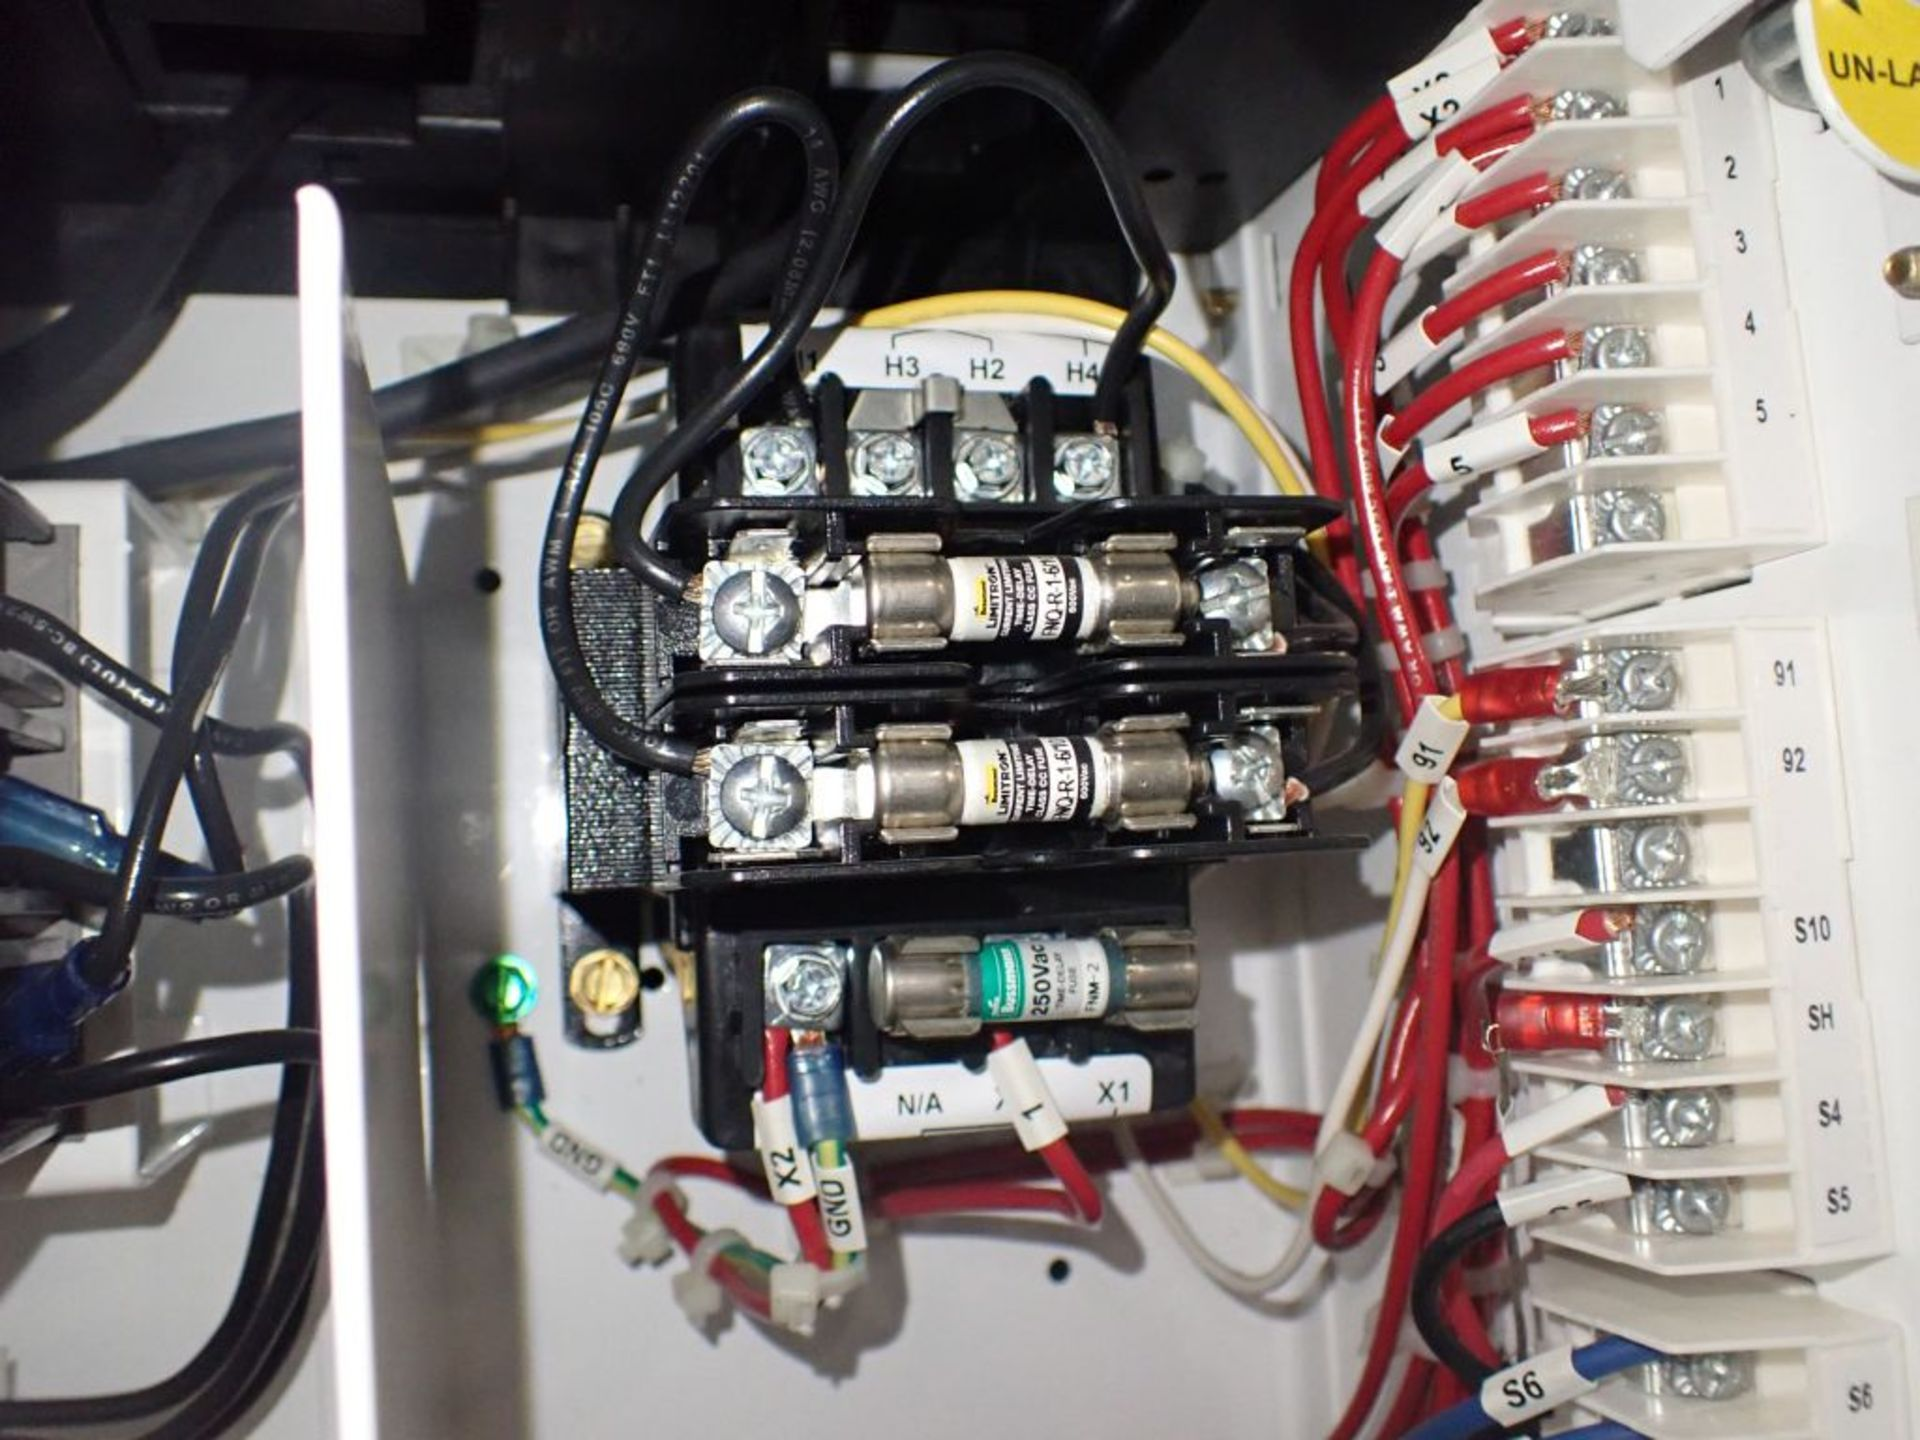 Eaton Freedom 2100 Series Motor Control Center   (4) SVX900-30A, with Eaton AF Drives, SVX9000, - Image 27 of 60